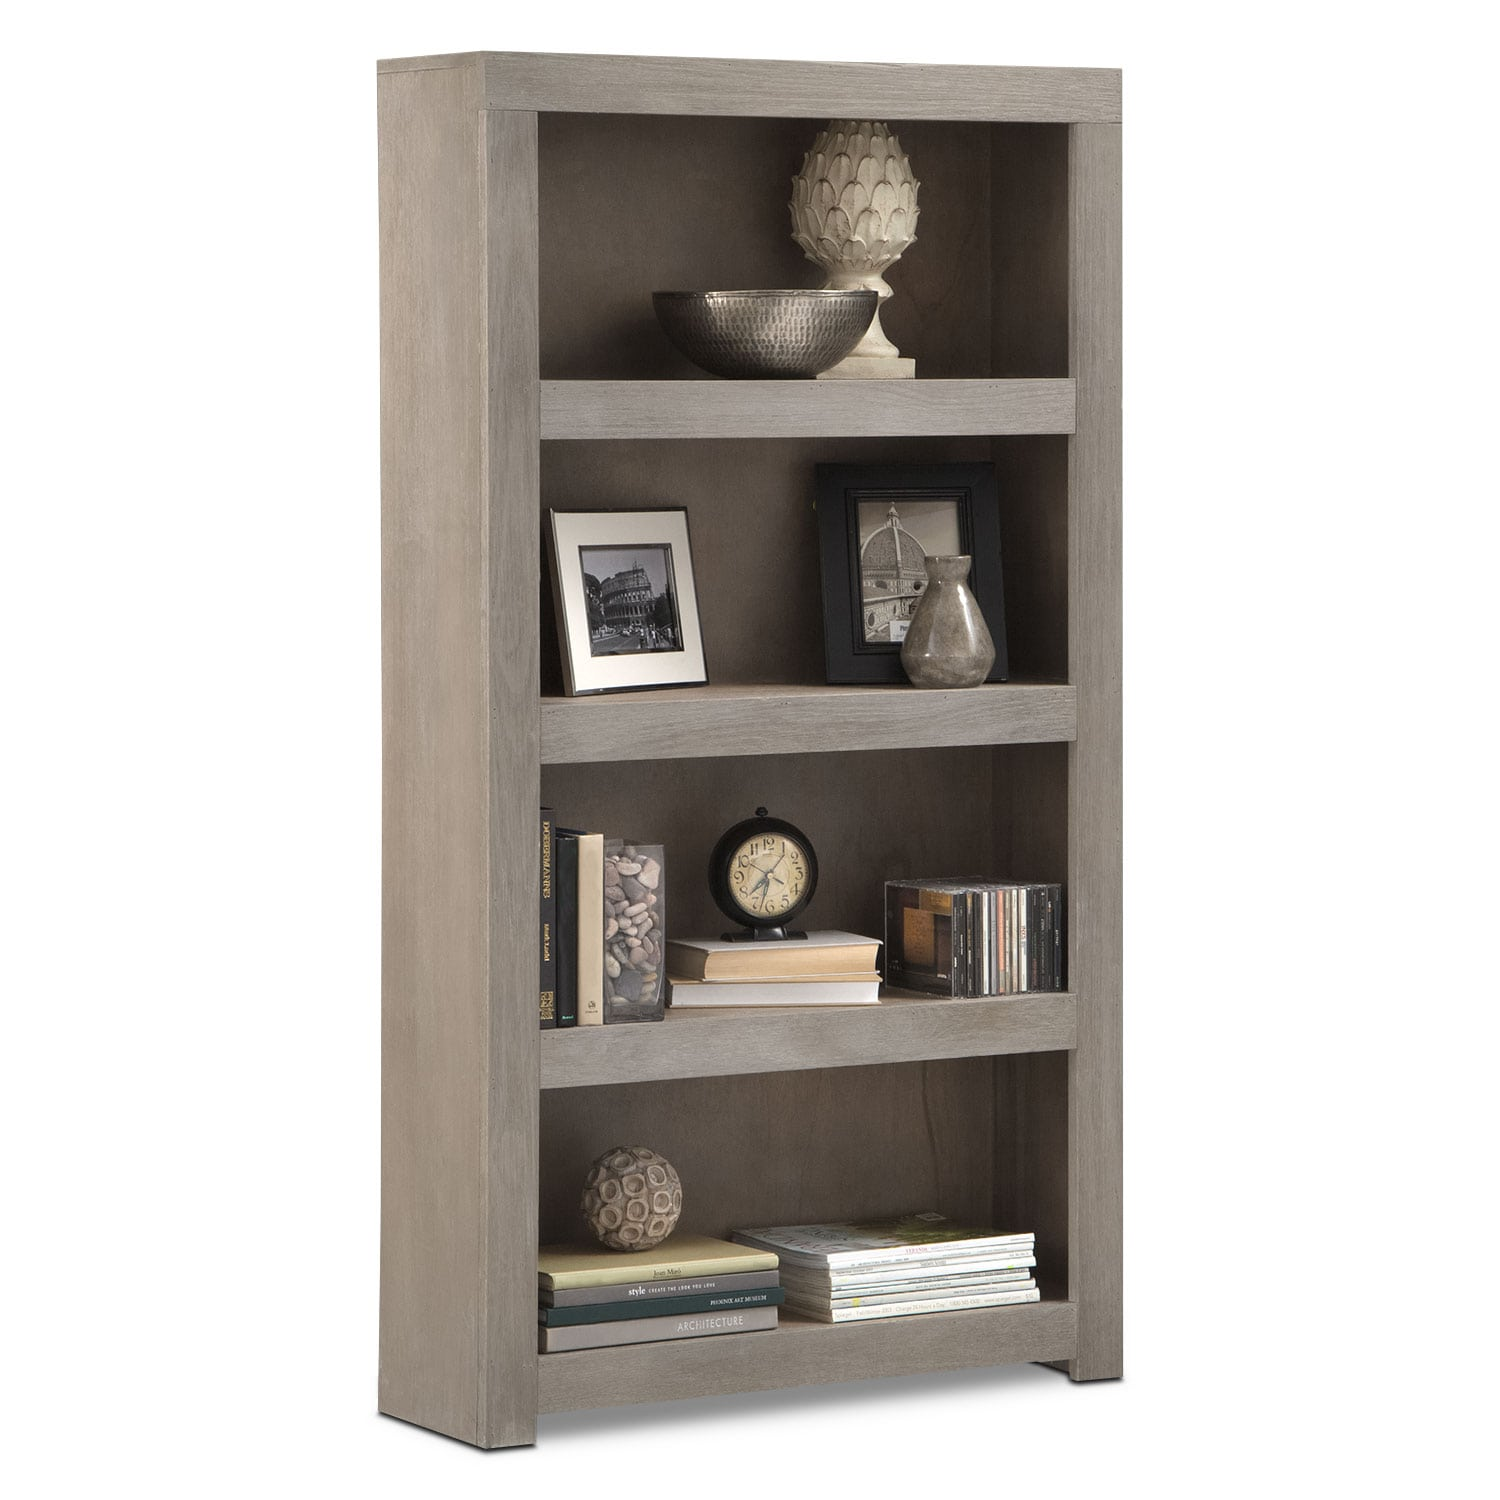 "Home Office Furniture - Bricklin 60"" Bookcase - Driftwood"